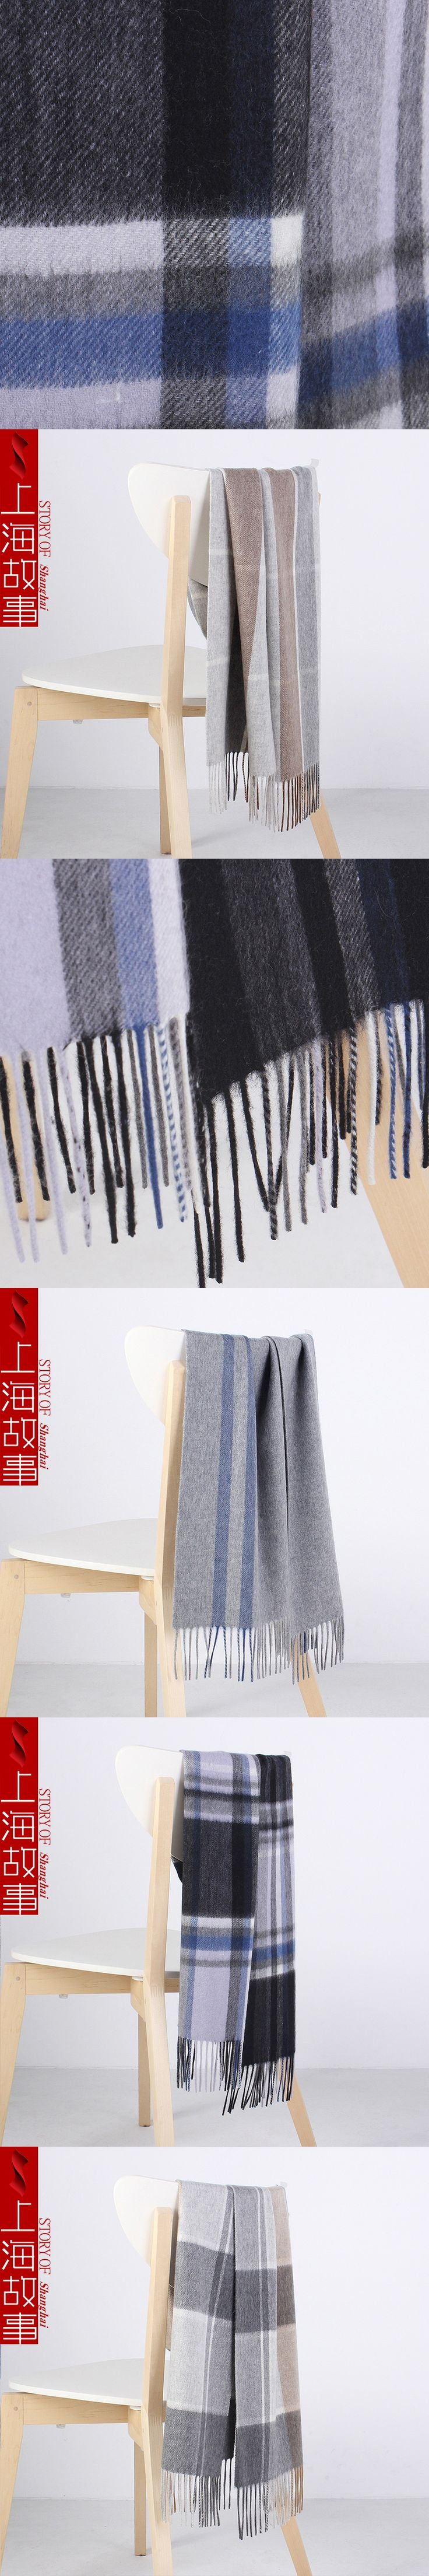 newest design stripe plaid scarves for men winter men's cashmere scarf winter thick warm business casual wrap shawls